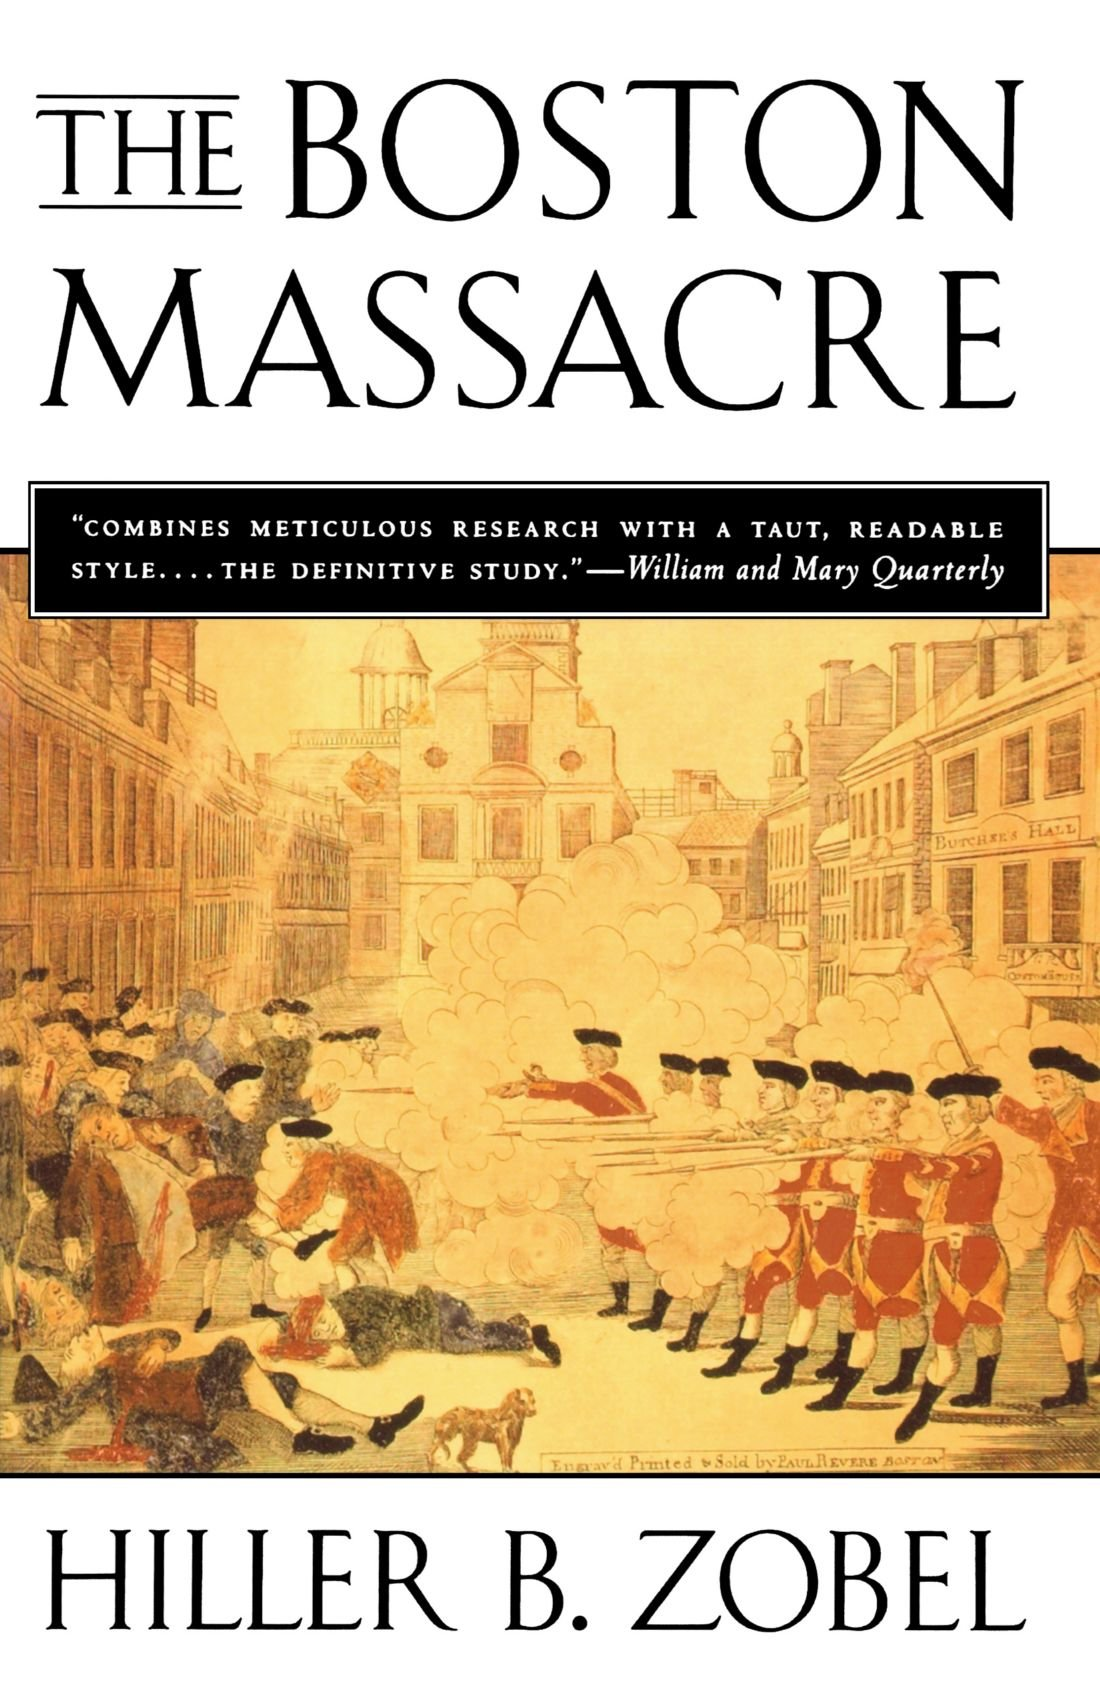 the boston massacre hiller b zobel 9780393314830 com books